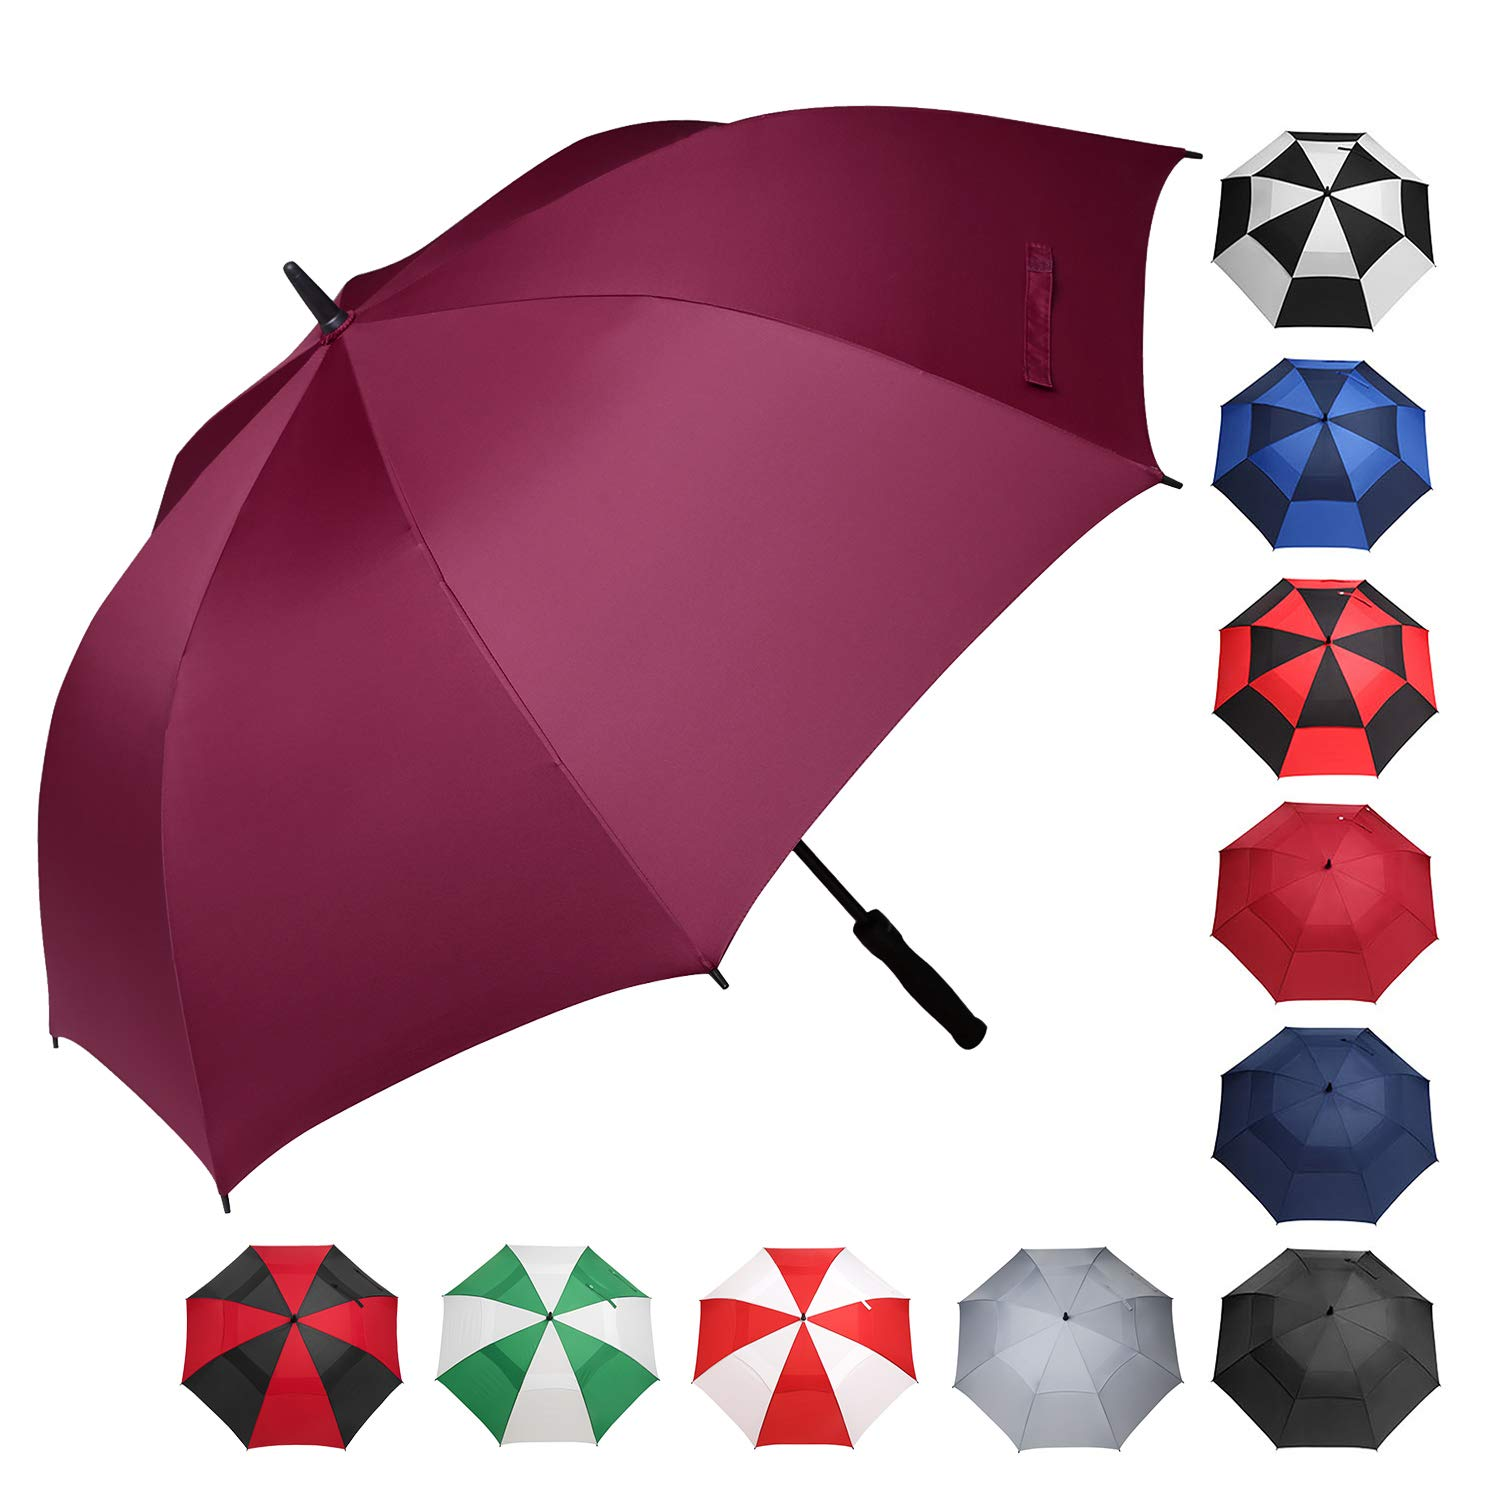 BAGAIL Golf Umbrella 68/62/58 Inch Large Oversize Windproof Waterproof Automatic Open Stick Umbrellas for Men and Women(Burgundy,62 inch) by BAGAIL